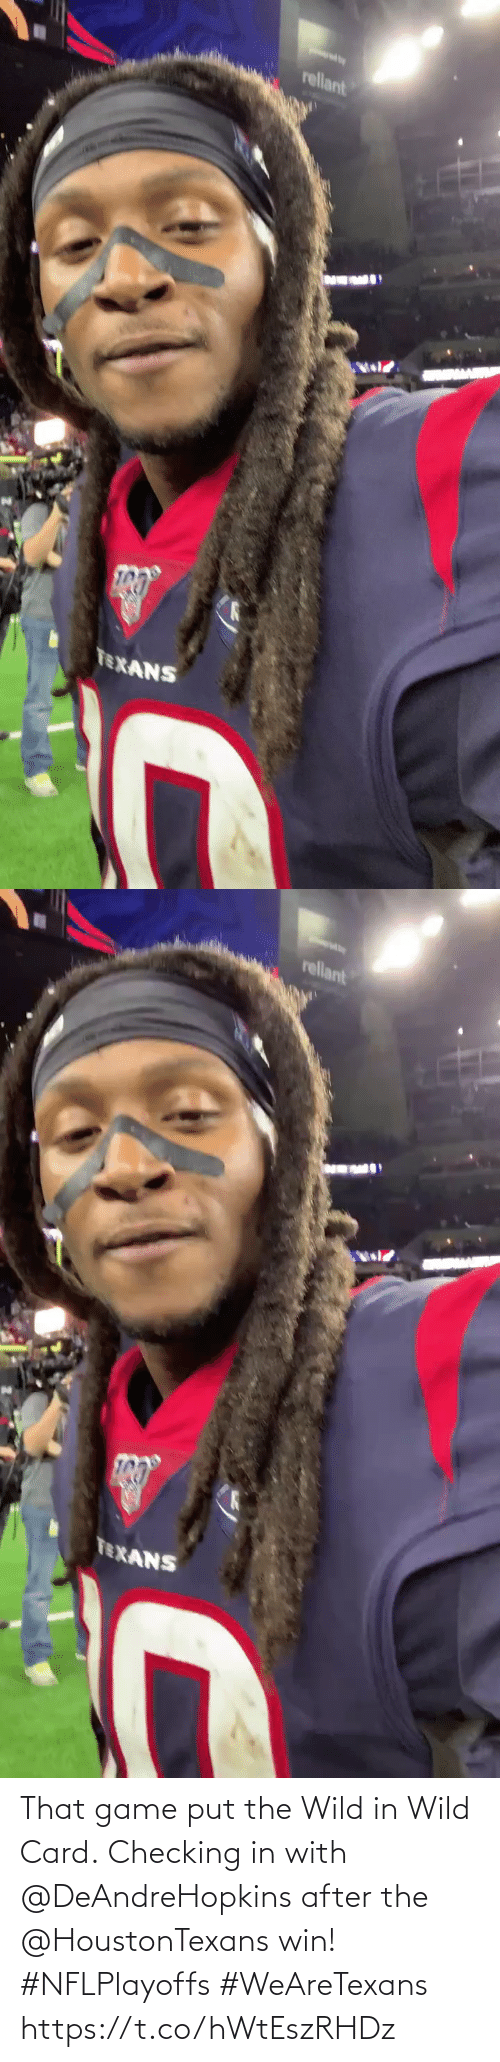 card: rellant  TEXANS   rellant  TEXANS That game put the Wild in Wild Card.  Checking in with @DeAndreHopkins after the @HoustonTexans win! #NFLPlayoffs #WeAreTexans https://t.co/hWtEszRHDz